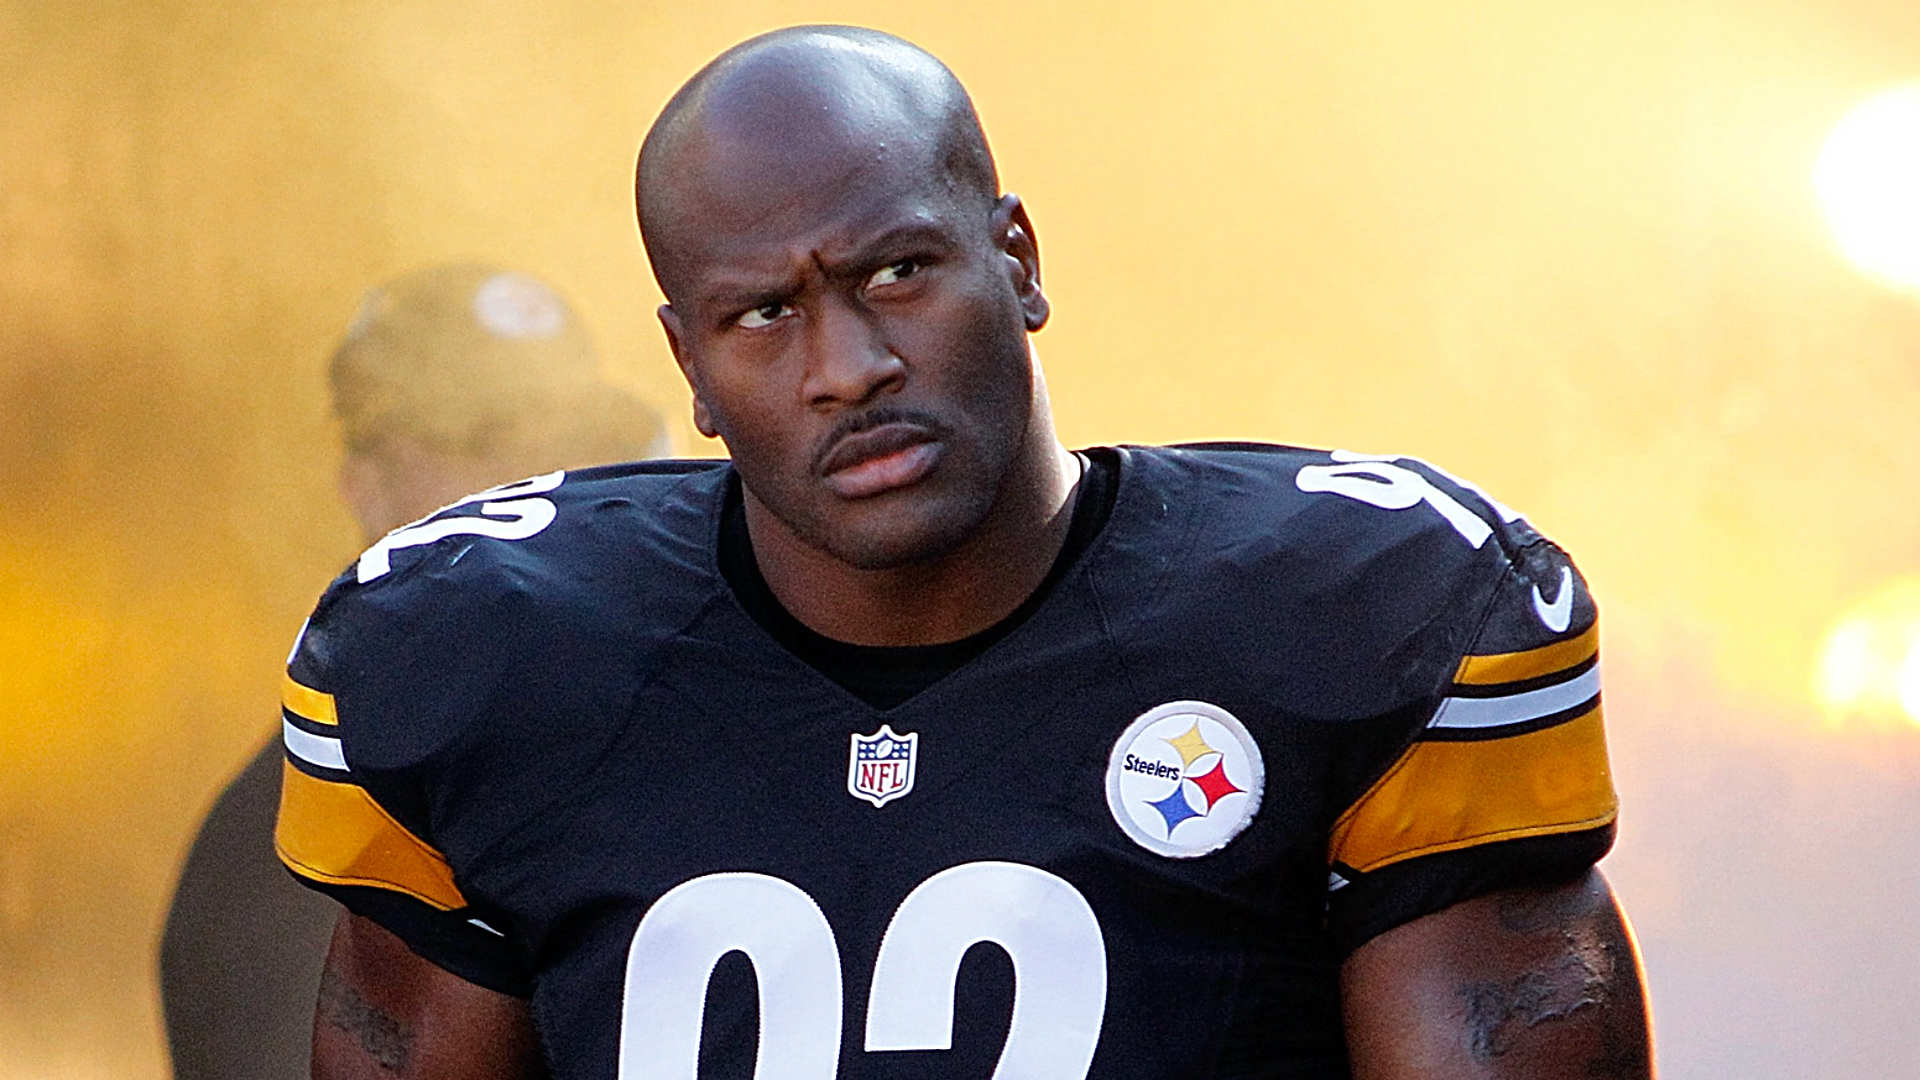 James harrison welcomes open nfl investigation calls for The harrison